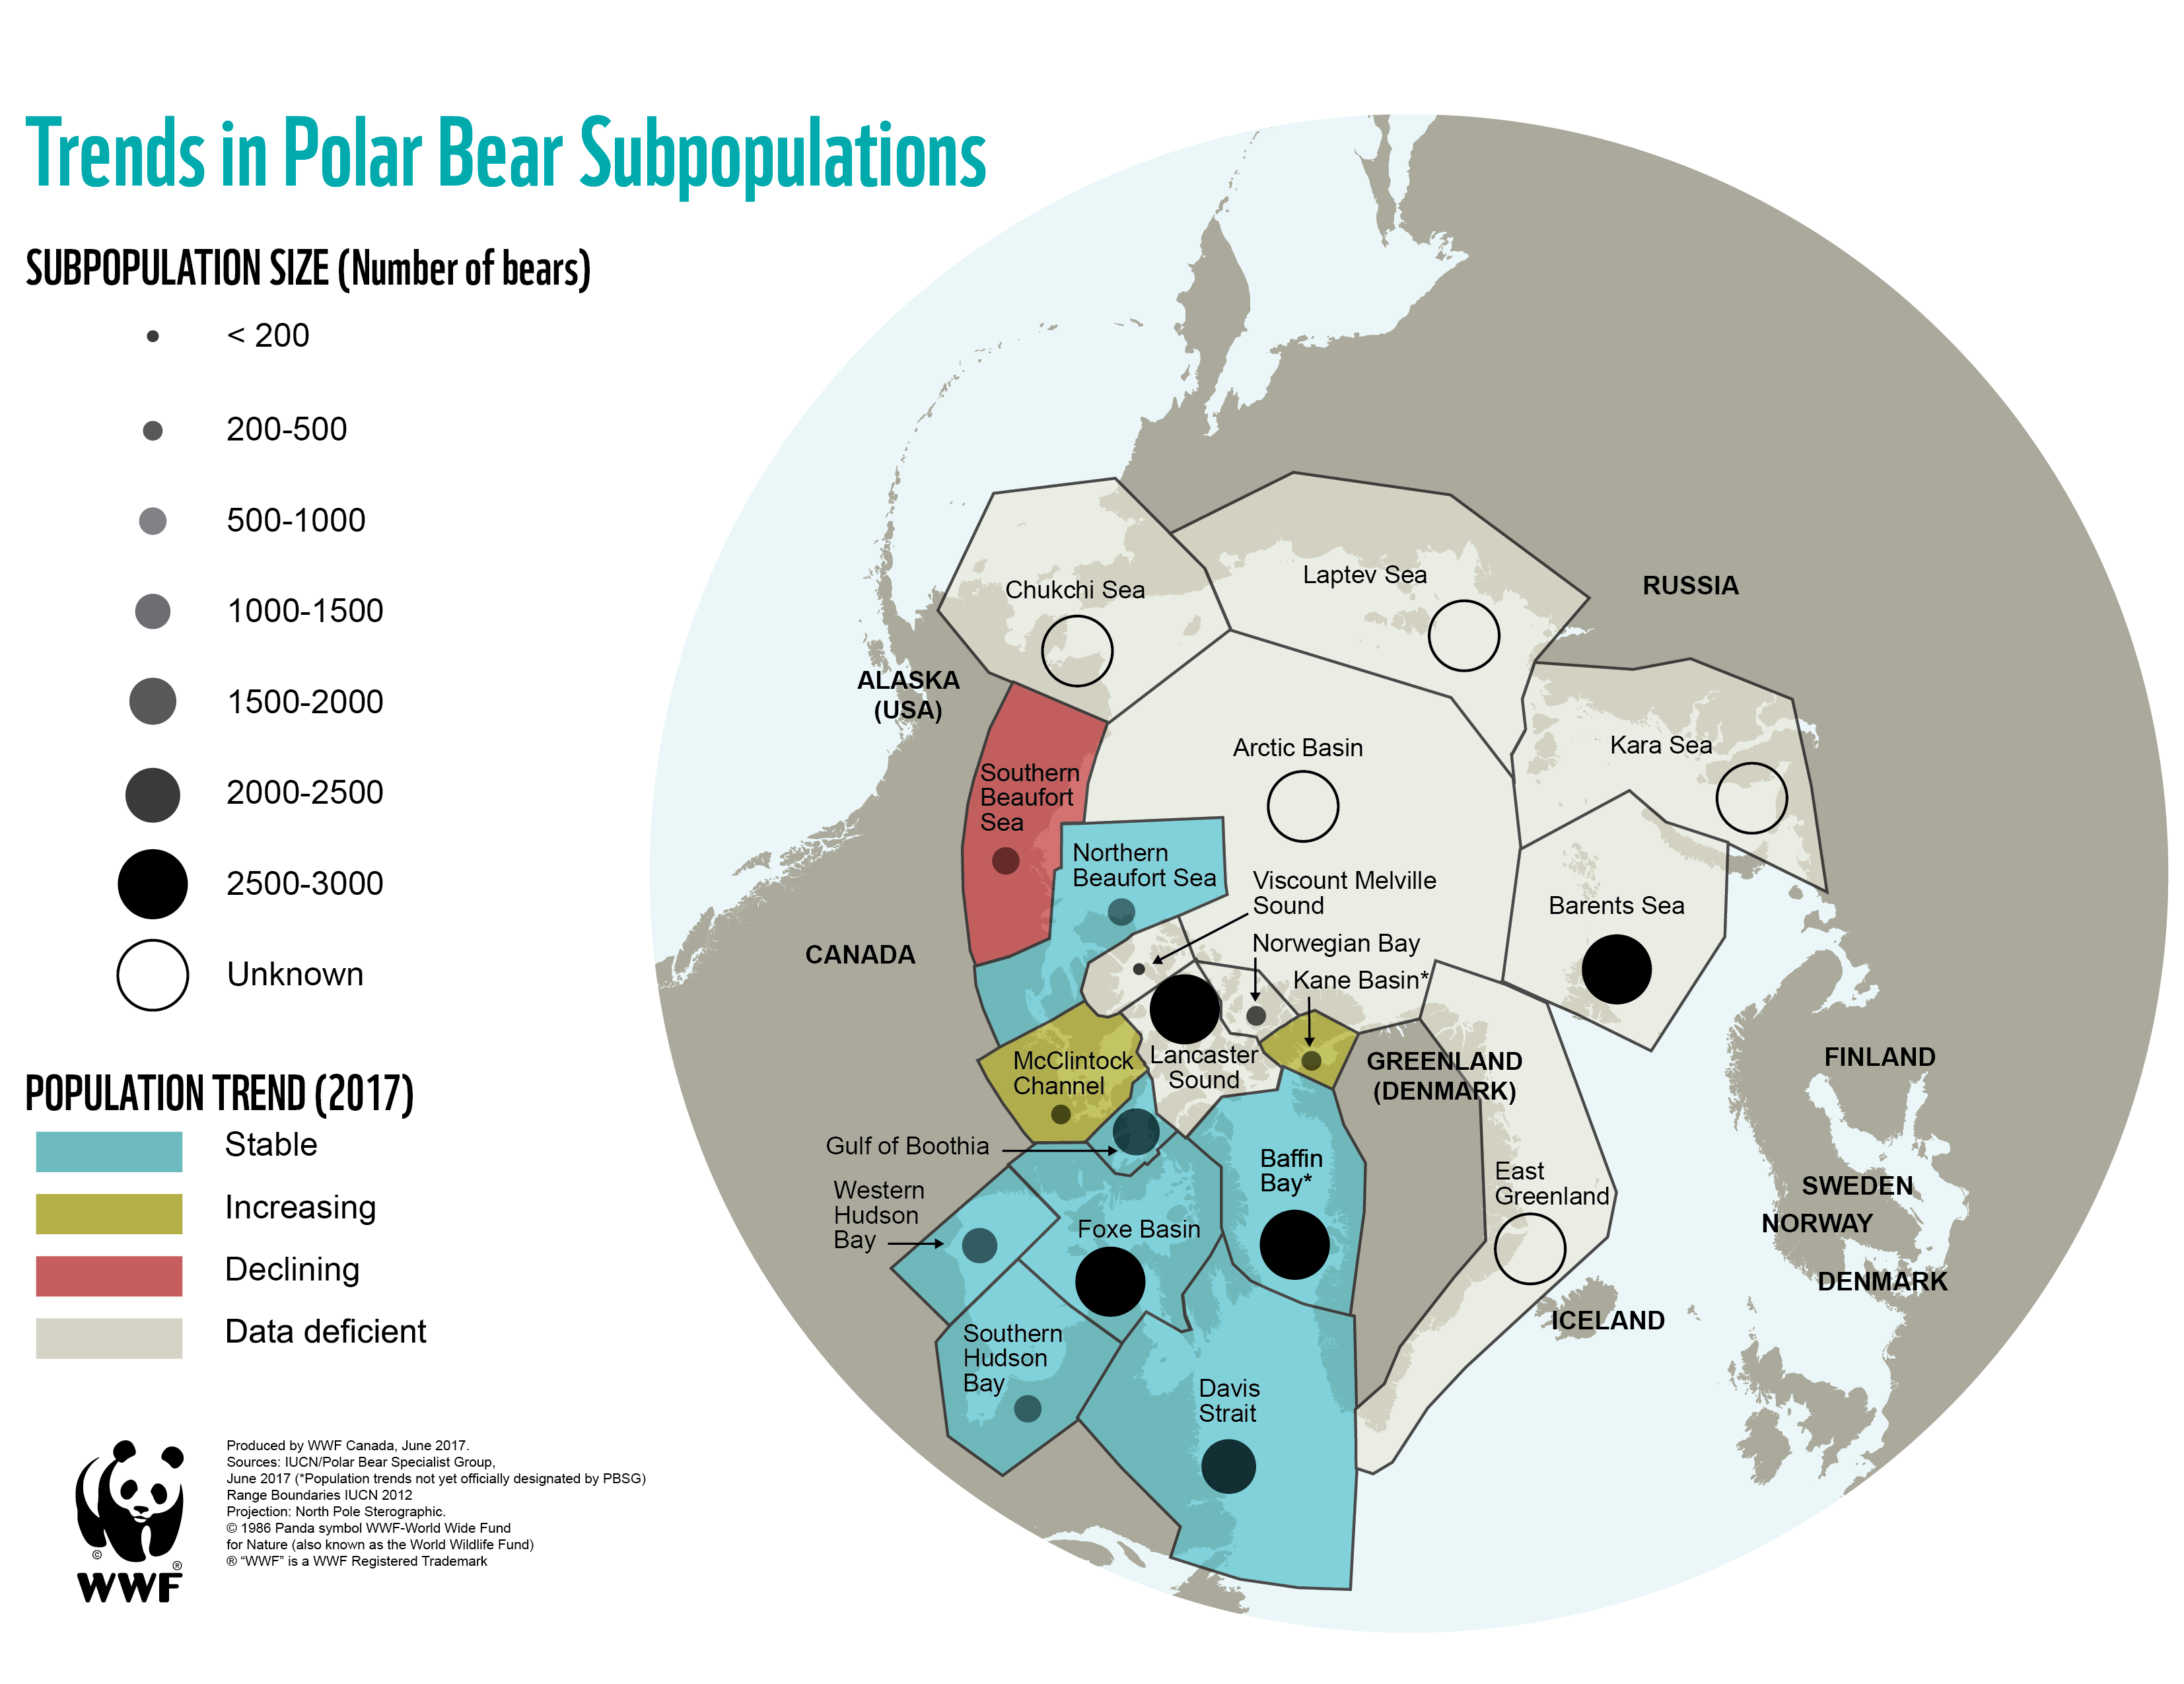 Polar bear subpopulations